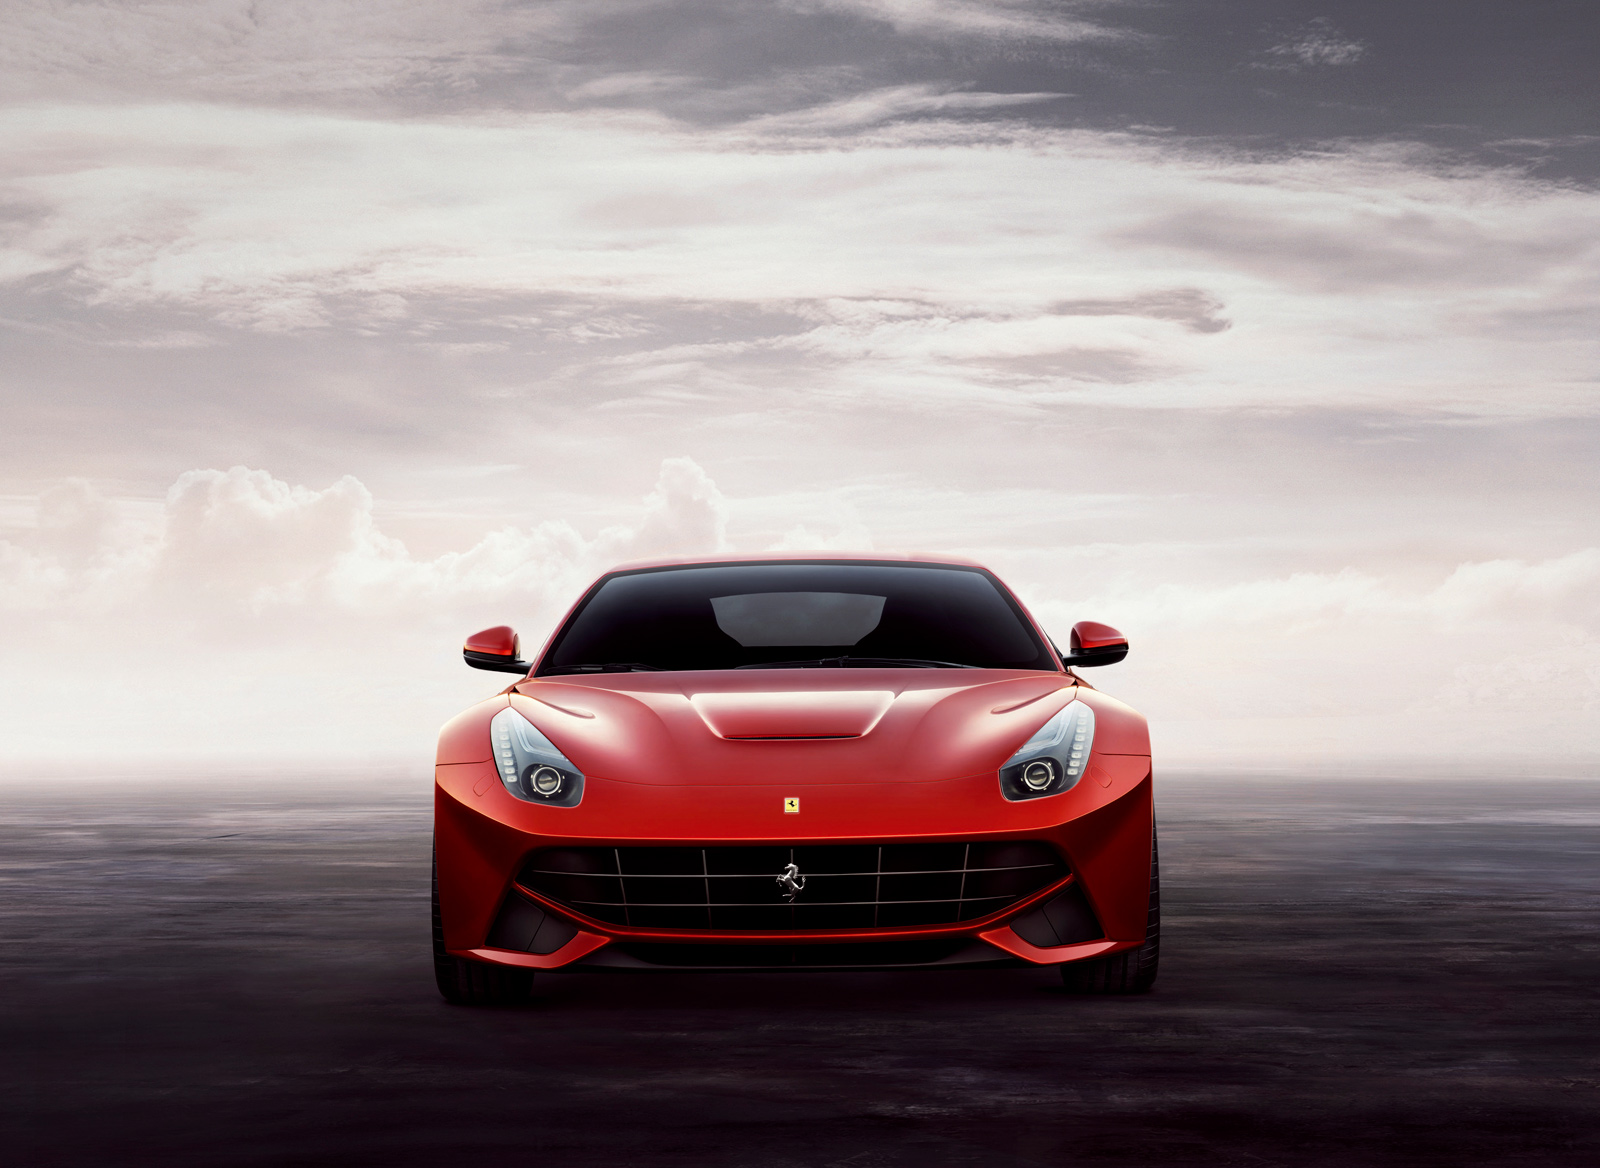 2012 Ferrari F12 Berlinetta Price Ferrari F12 Berlinetta Gallops